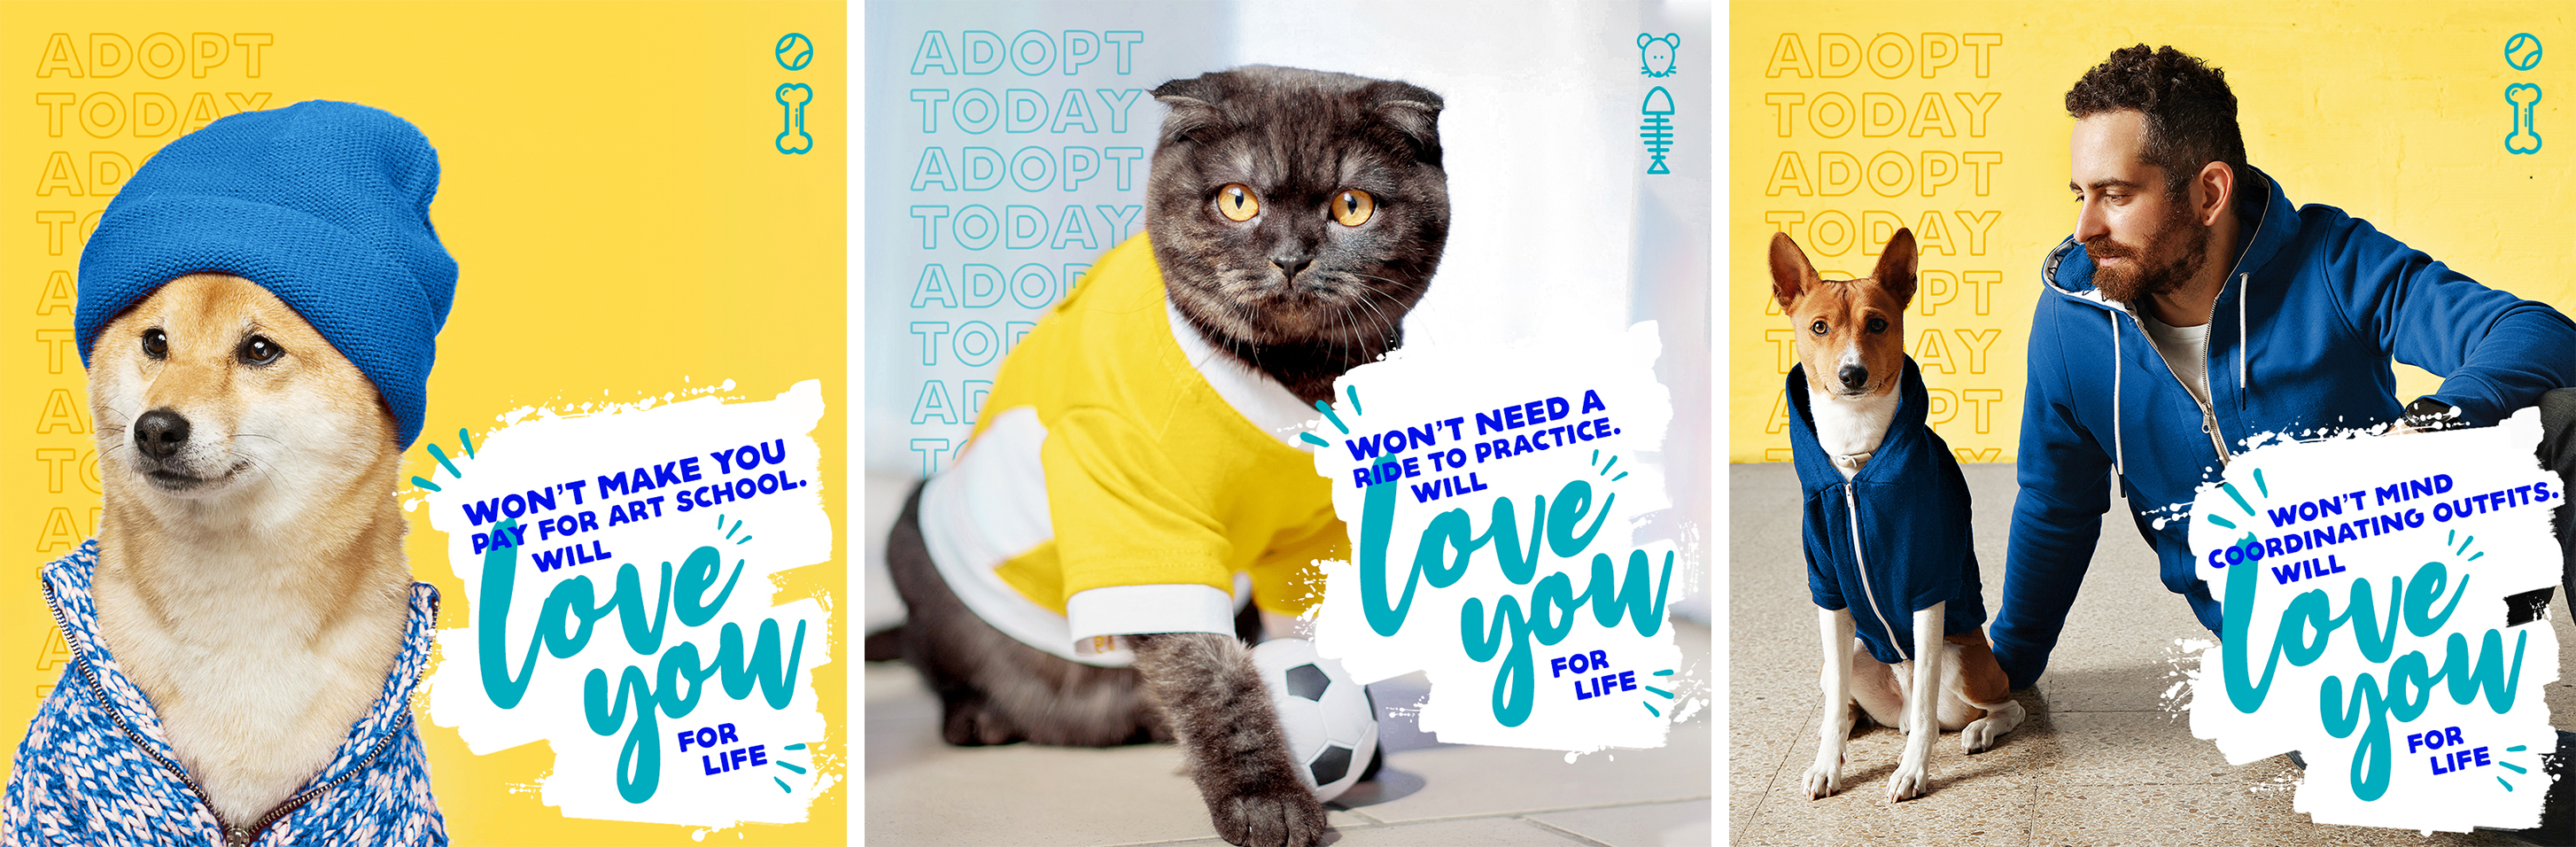 3 pets in clothing with quippy text to encourage animal adoption overtop